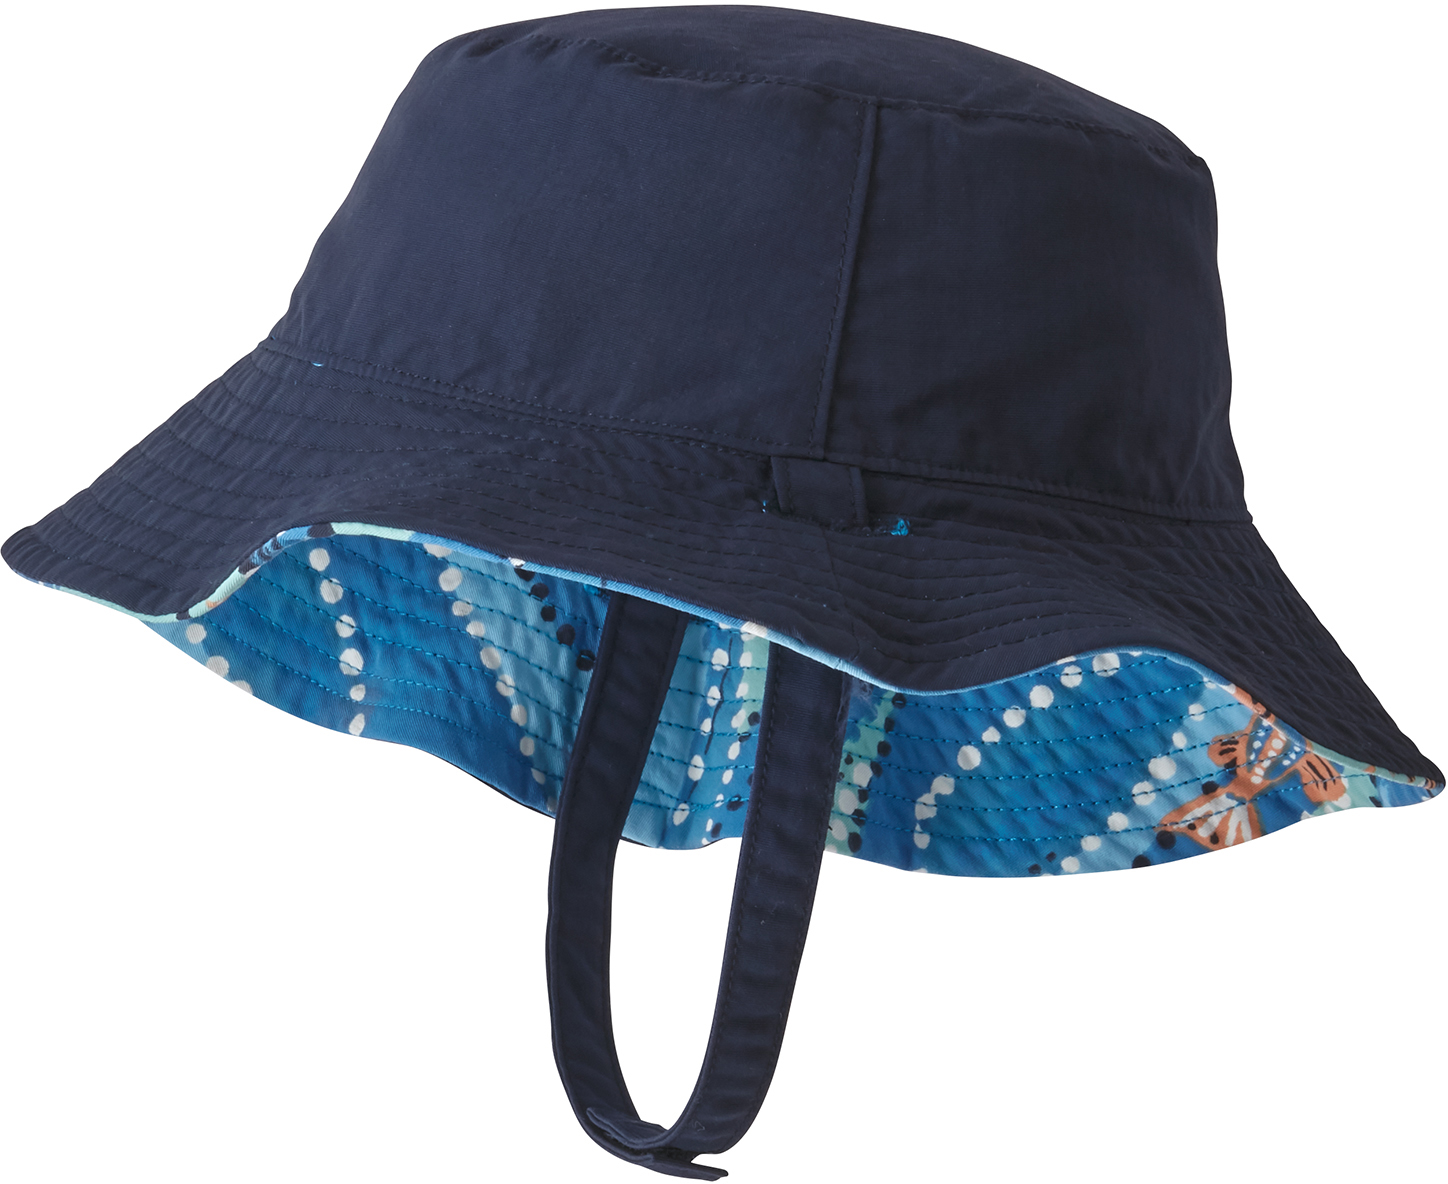 f78c9a68323d6 Patagonia Baby Sun Bucket Hat - Infants to Children